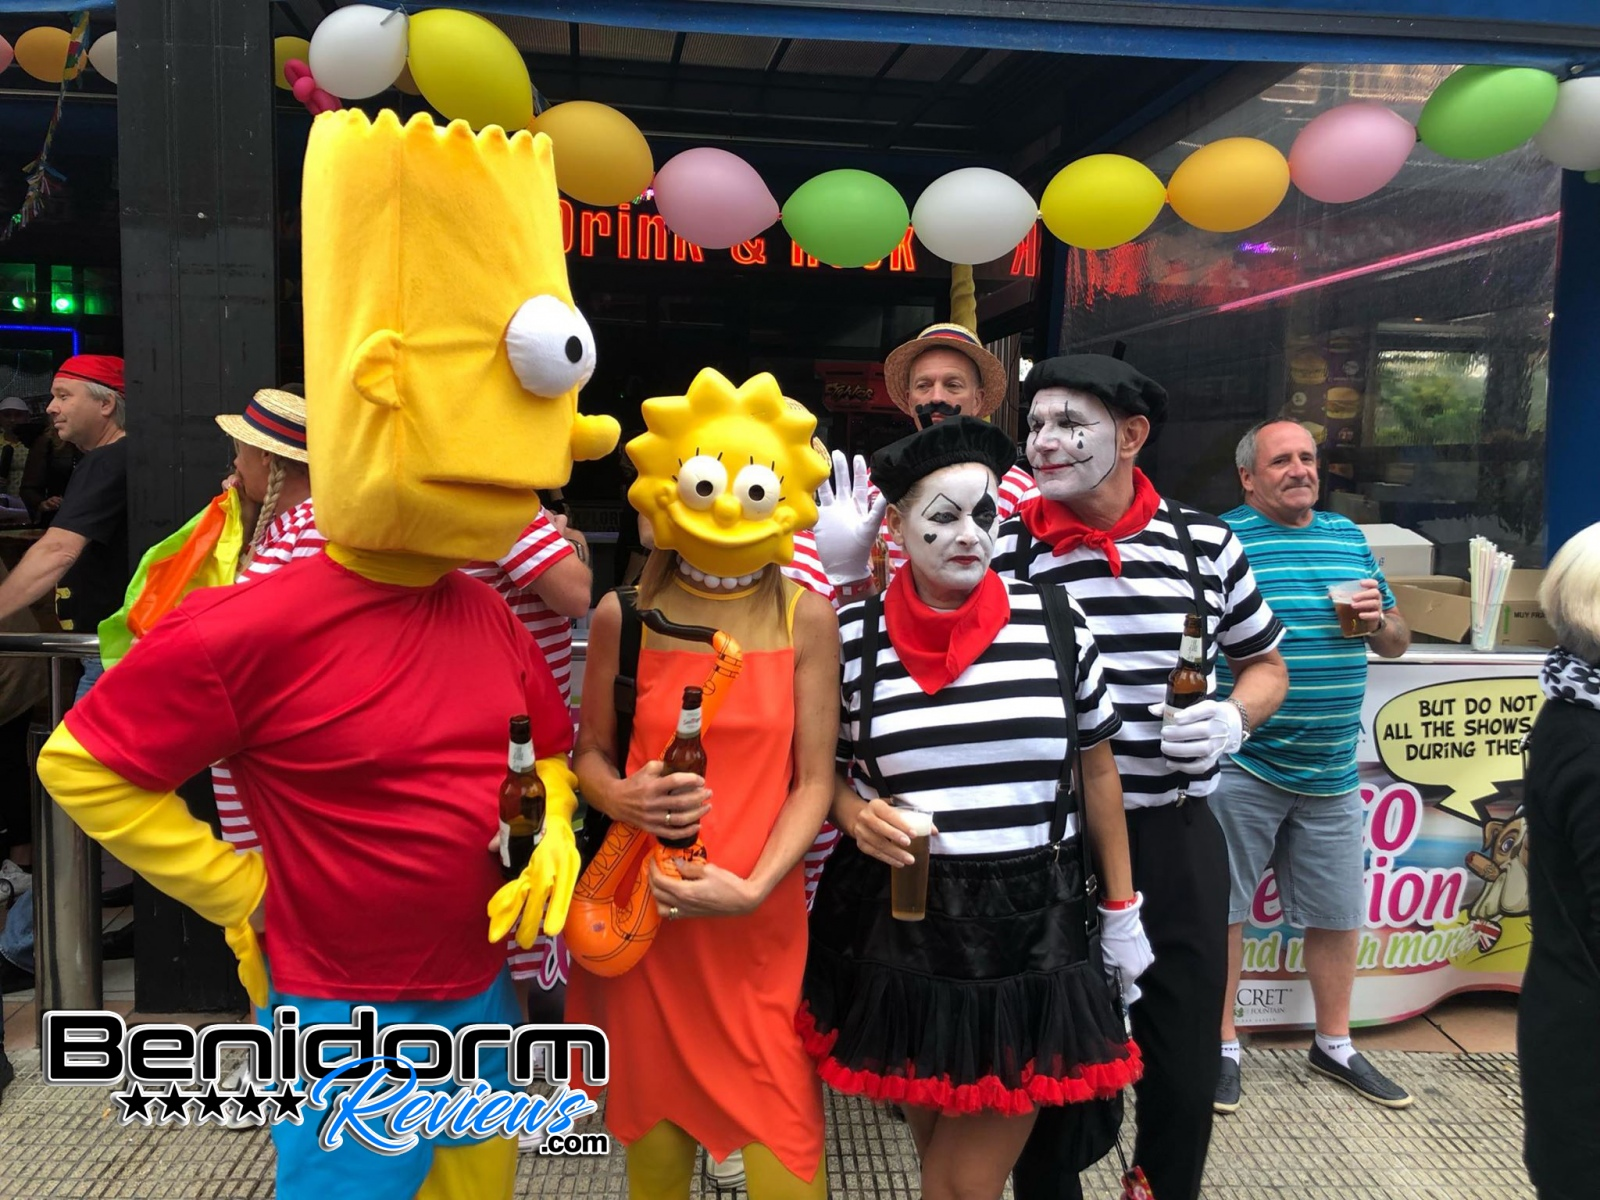 Benidorm-Fiestas-2019-Fancy-Dress-99